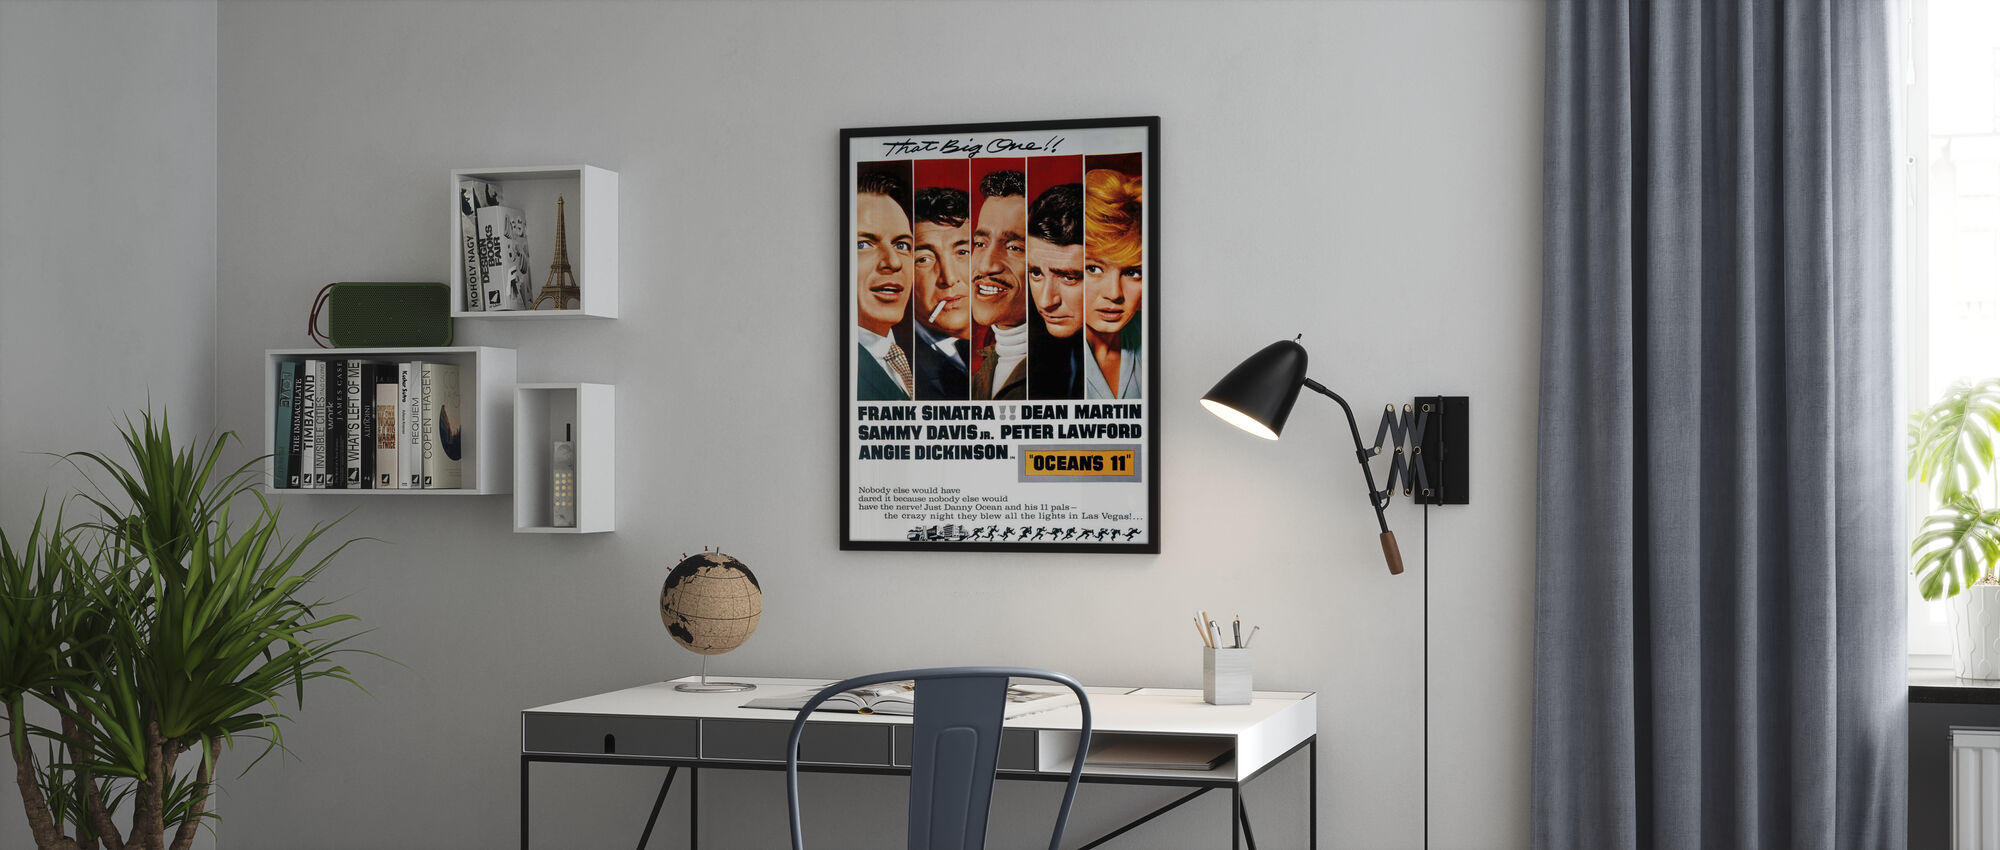 Oceans Eleven - Poster - Office